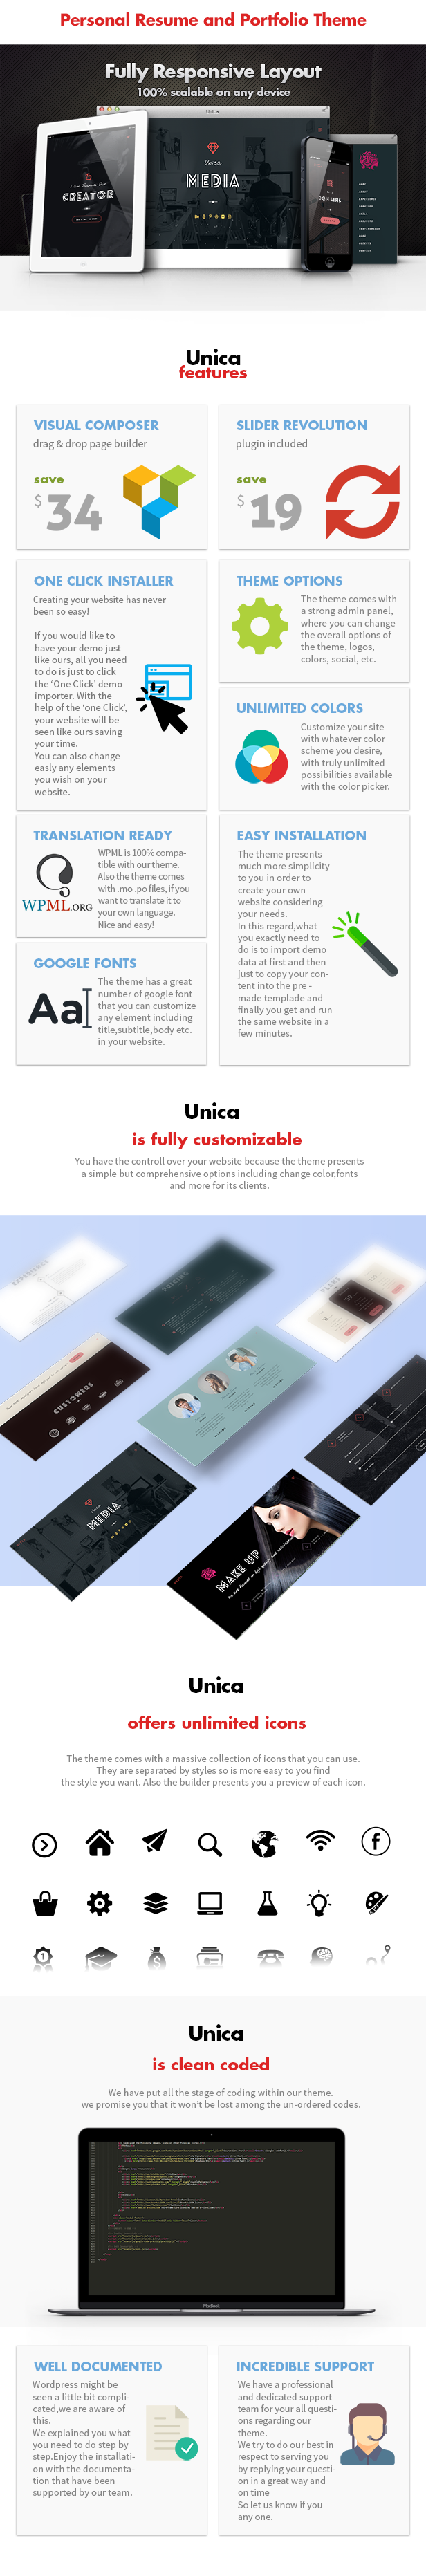 Unica - Personal Resume and Portfolio Theme - 6